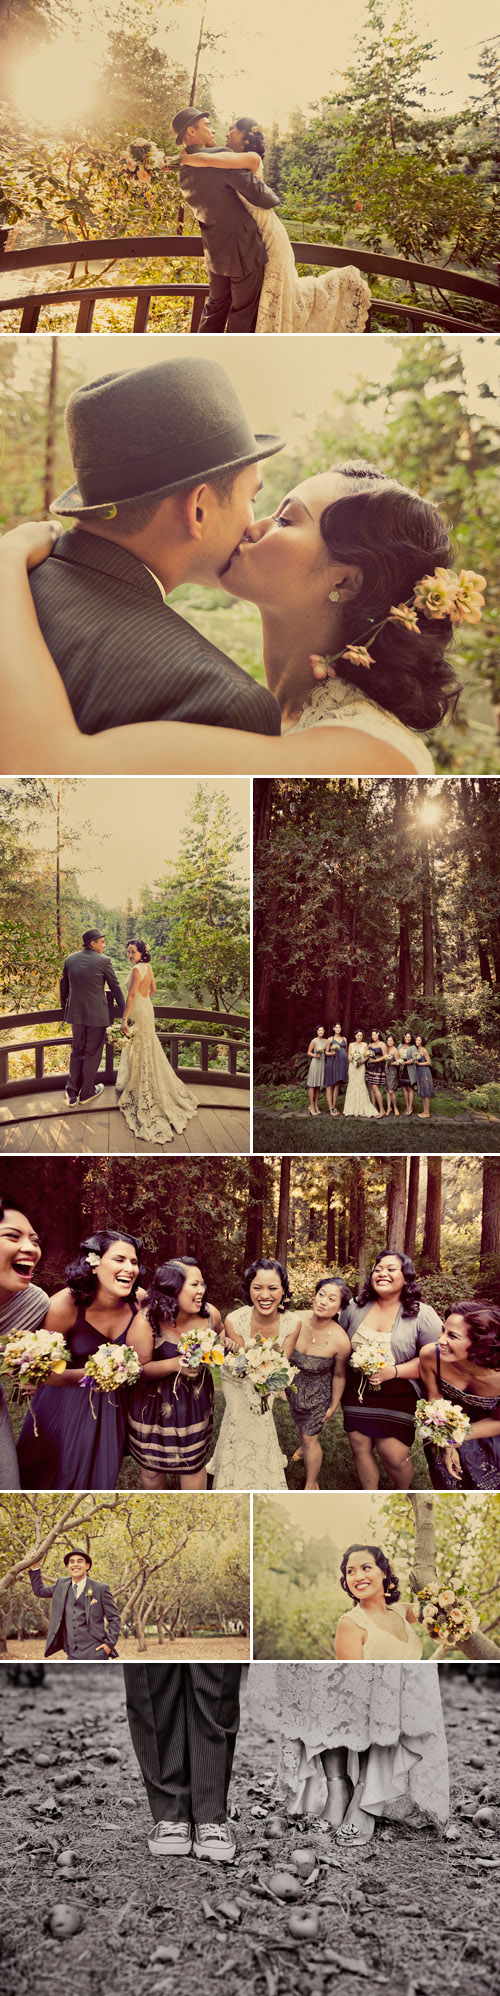 picnic inspired real wedding at Nestldown in the Santa Cruz Mountains, photos by Paco and Betty